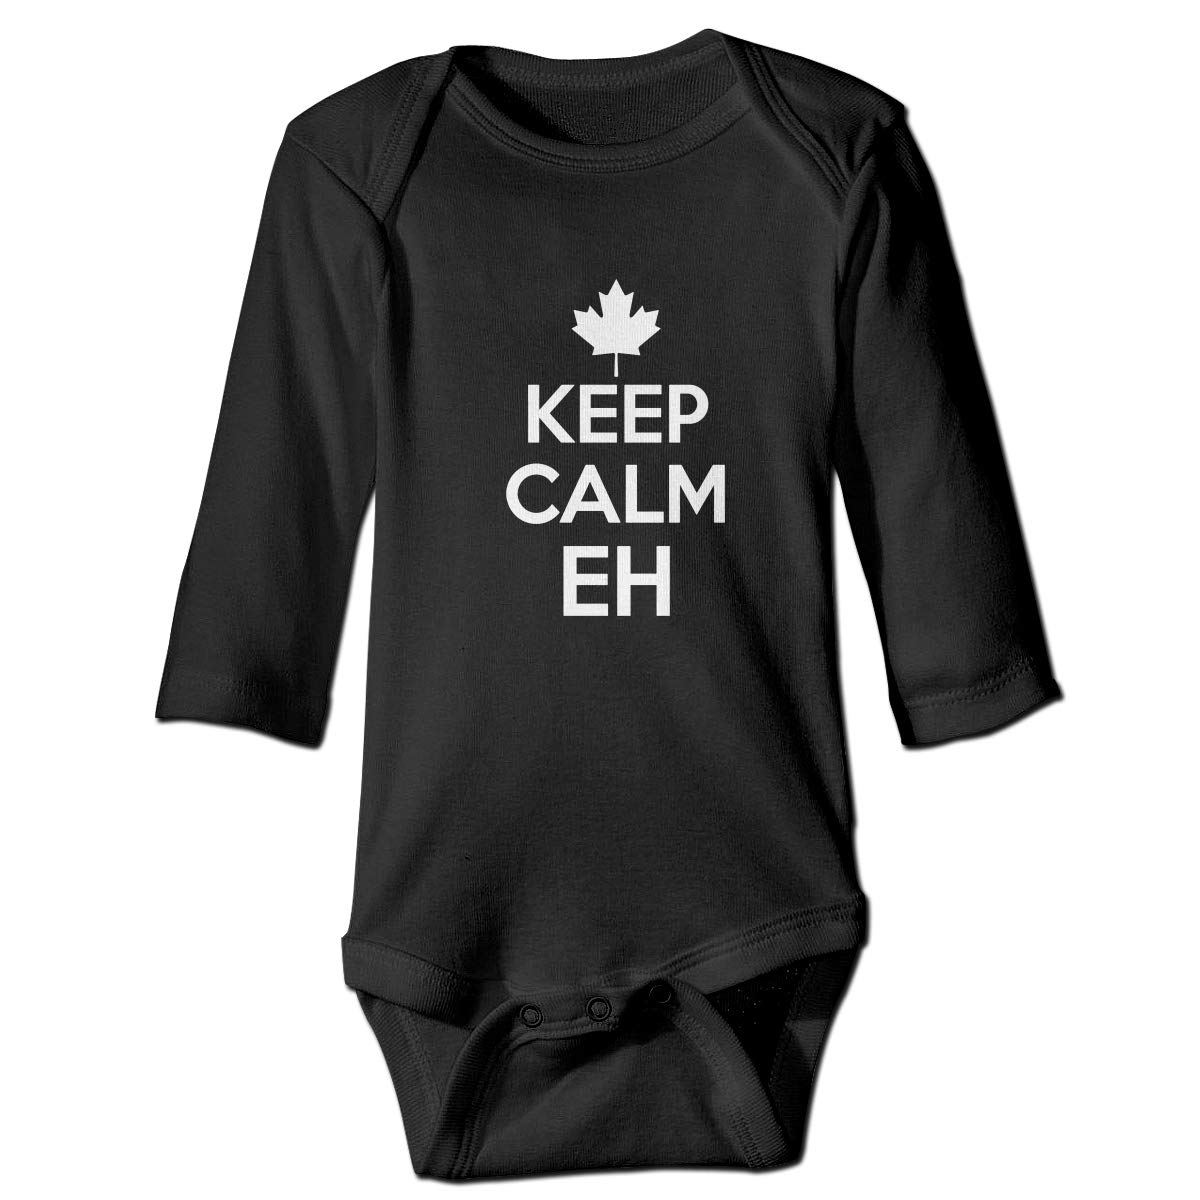 Cnfoldjfong Keep Calm Eh Long Sleeve Crawling Jumpsuit Rompers